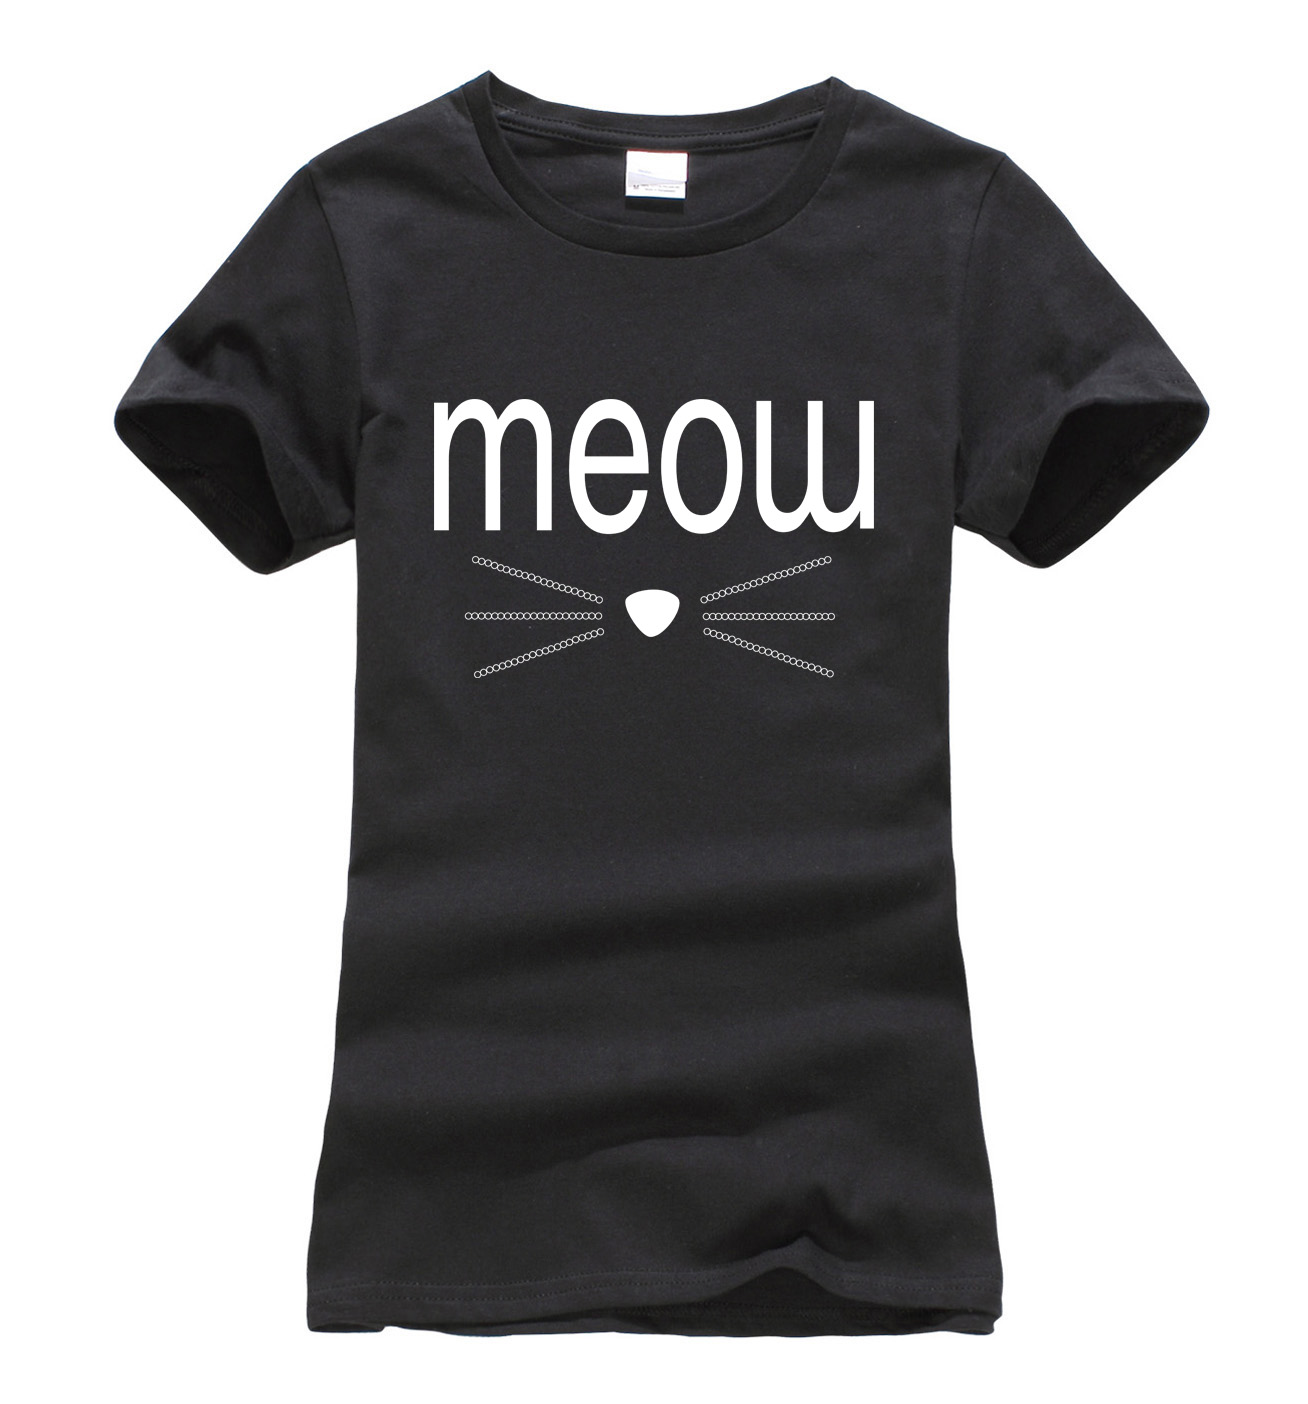 kawaii meow whiskers funny tee shirt femme 2017 summer. Black Bedroom Furniture Sets. Home Design Ideas